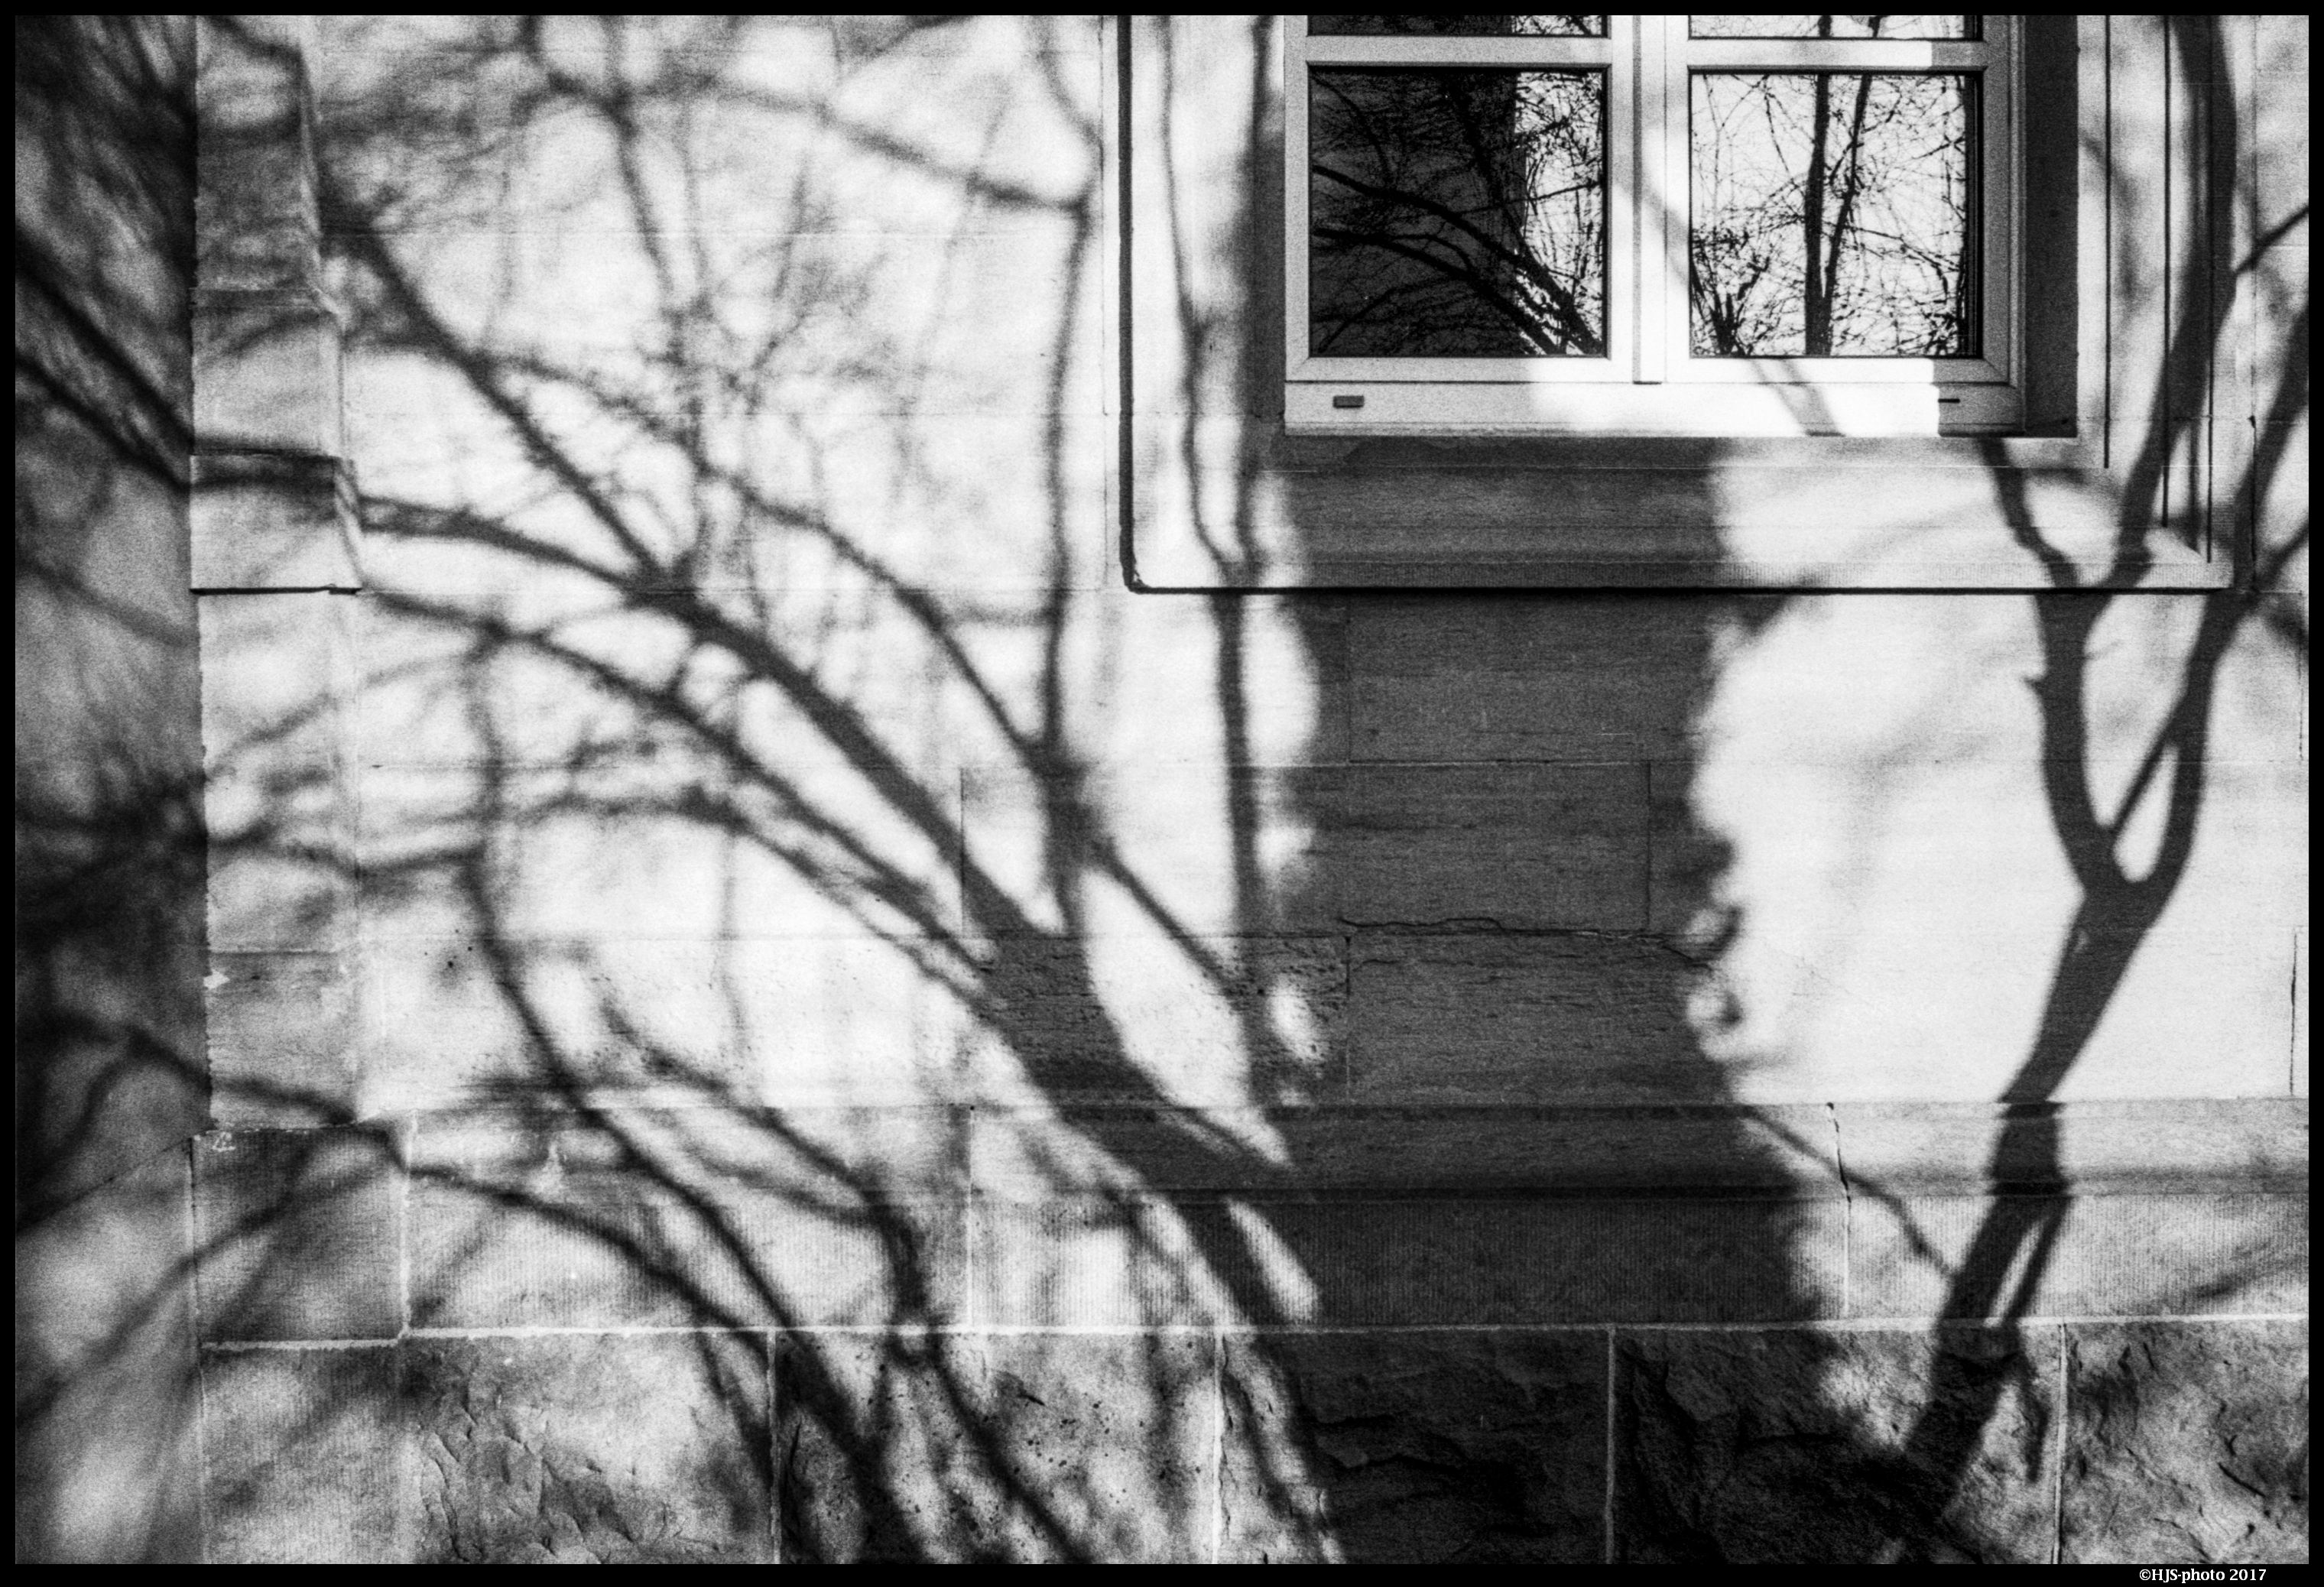 shadows, reflections, forms and lines | hjsphoto2